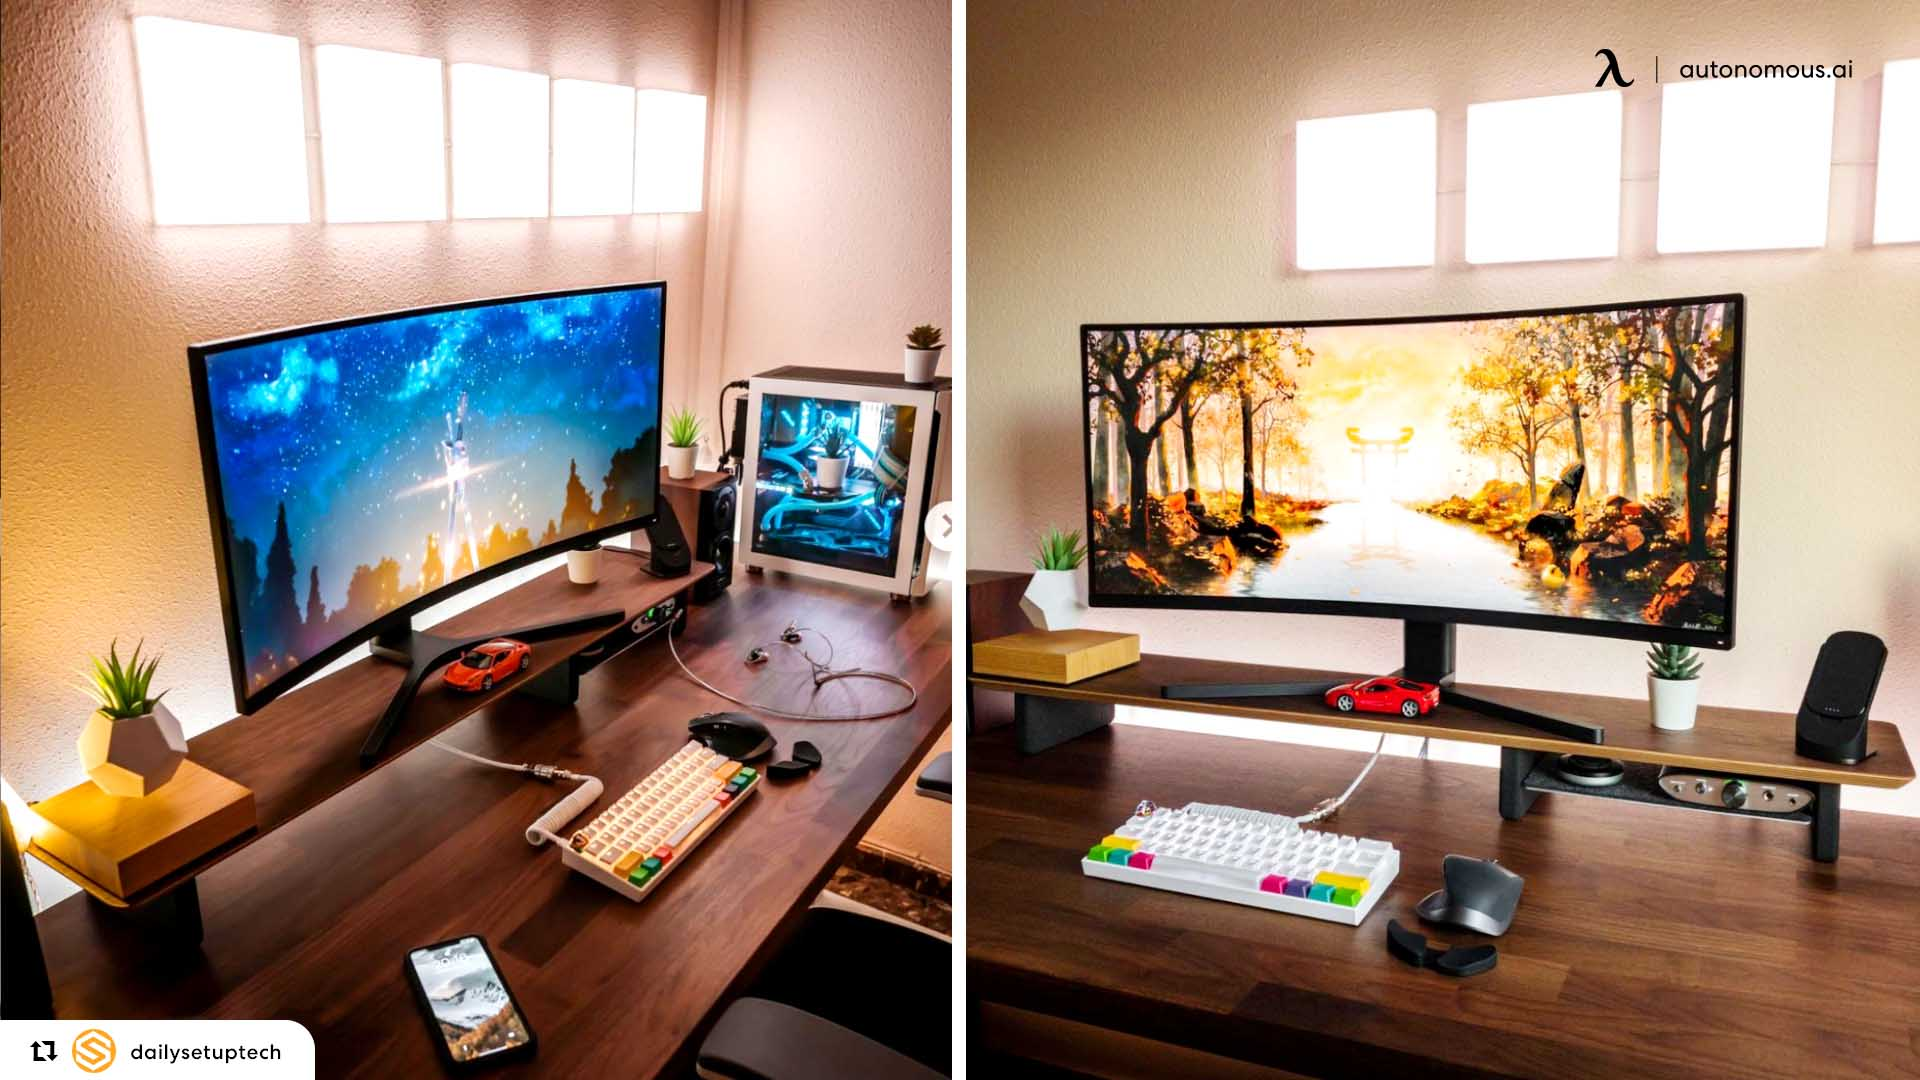 Curved monitors are more immersive.